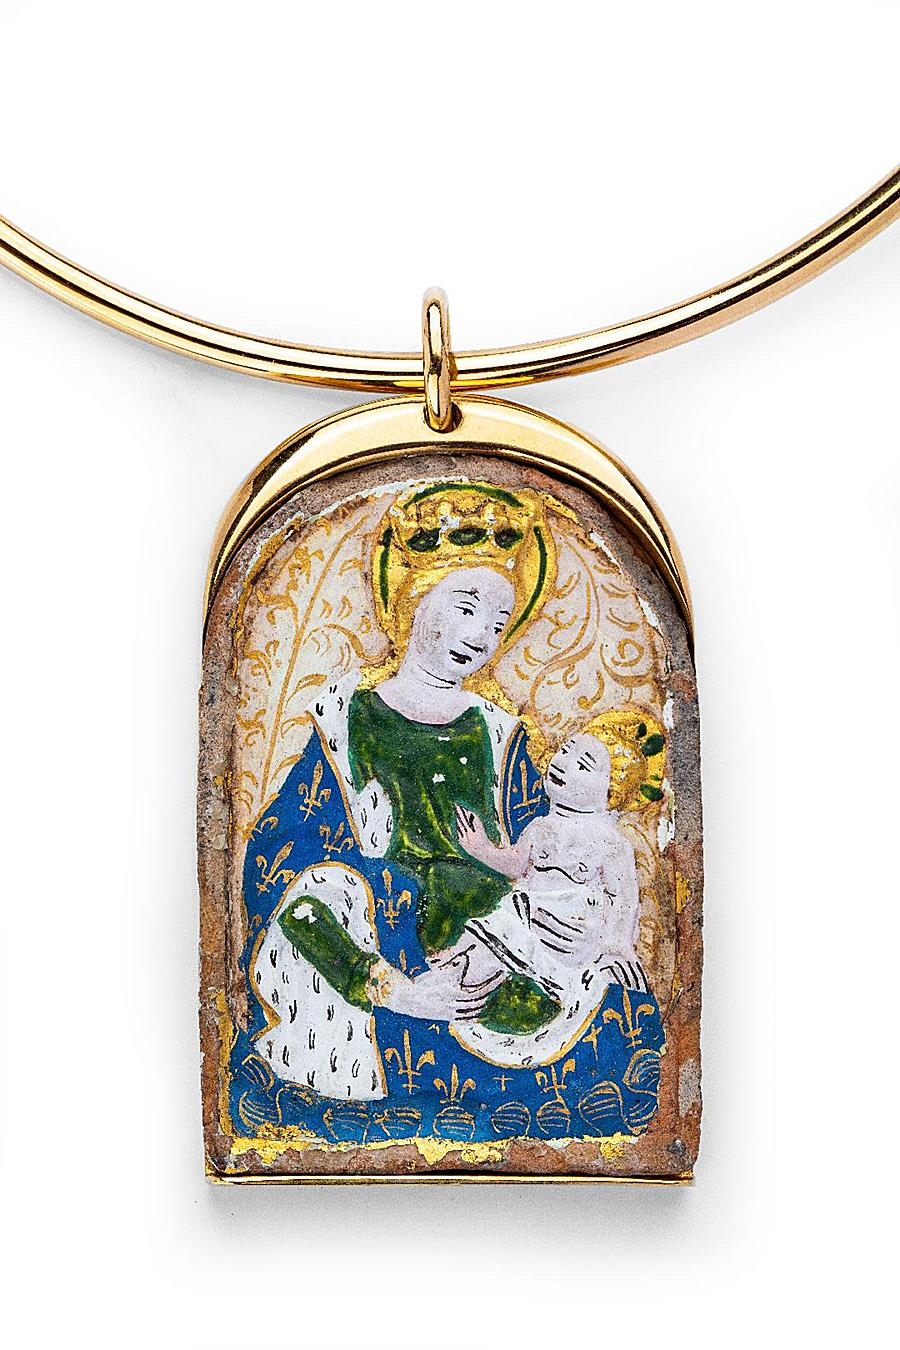 PENDANT WITH A MEDIEVAL MINIATURE